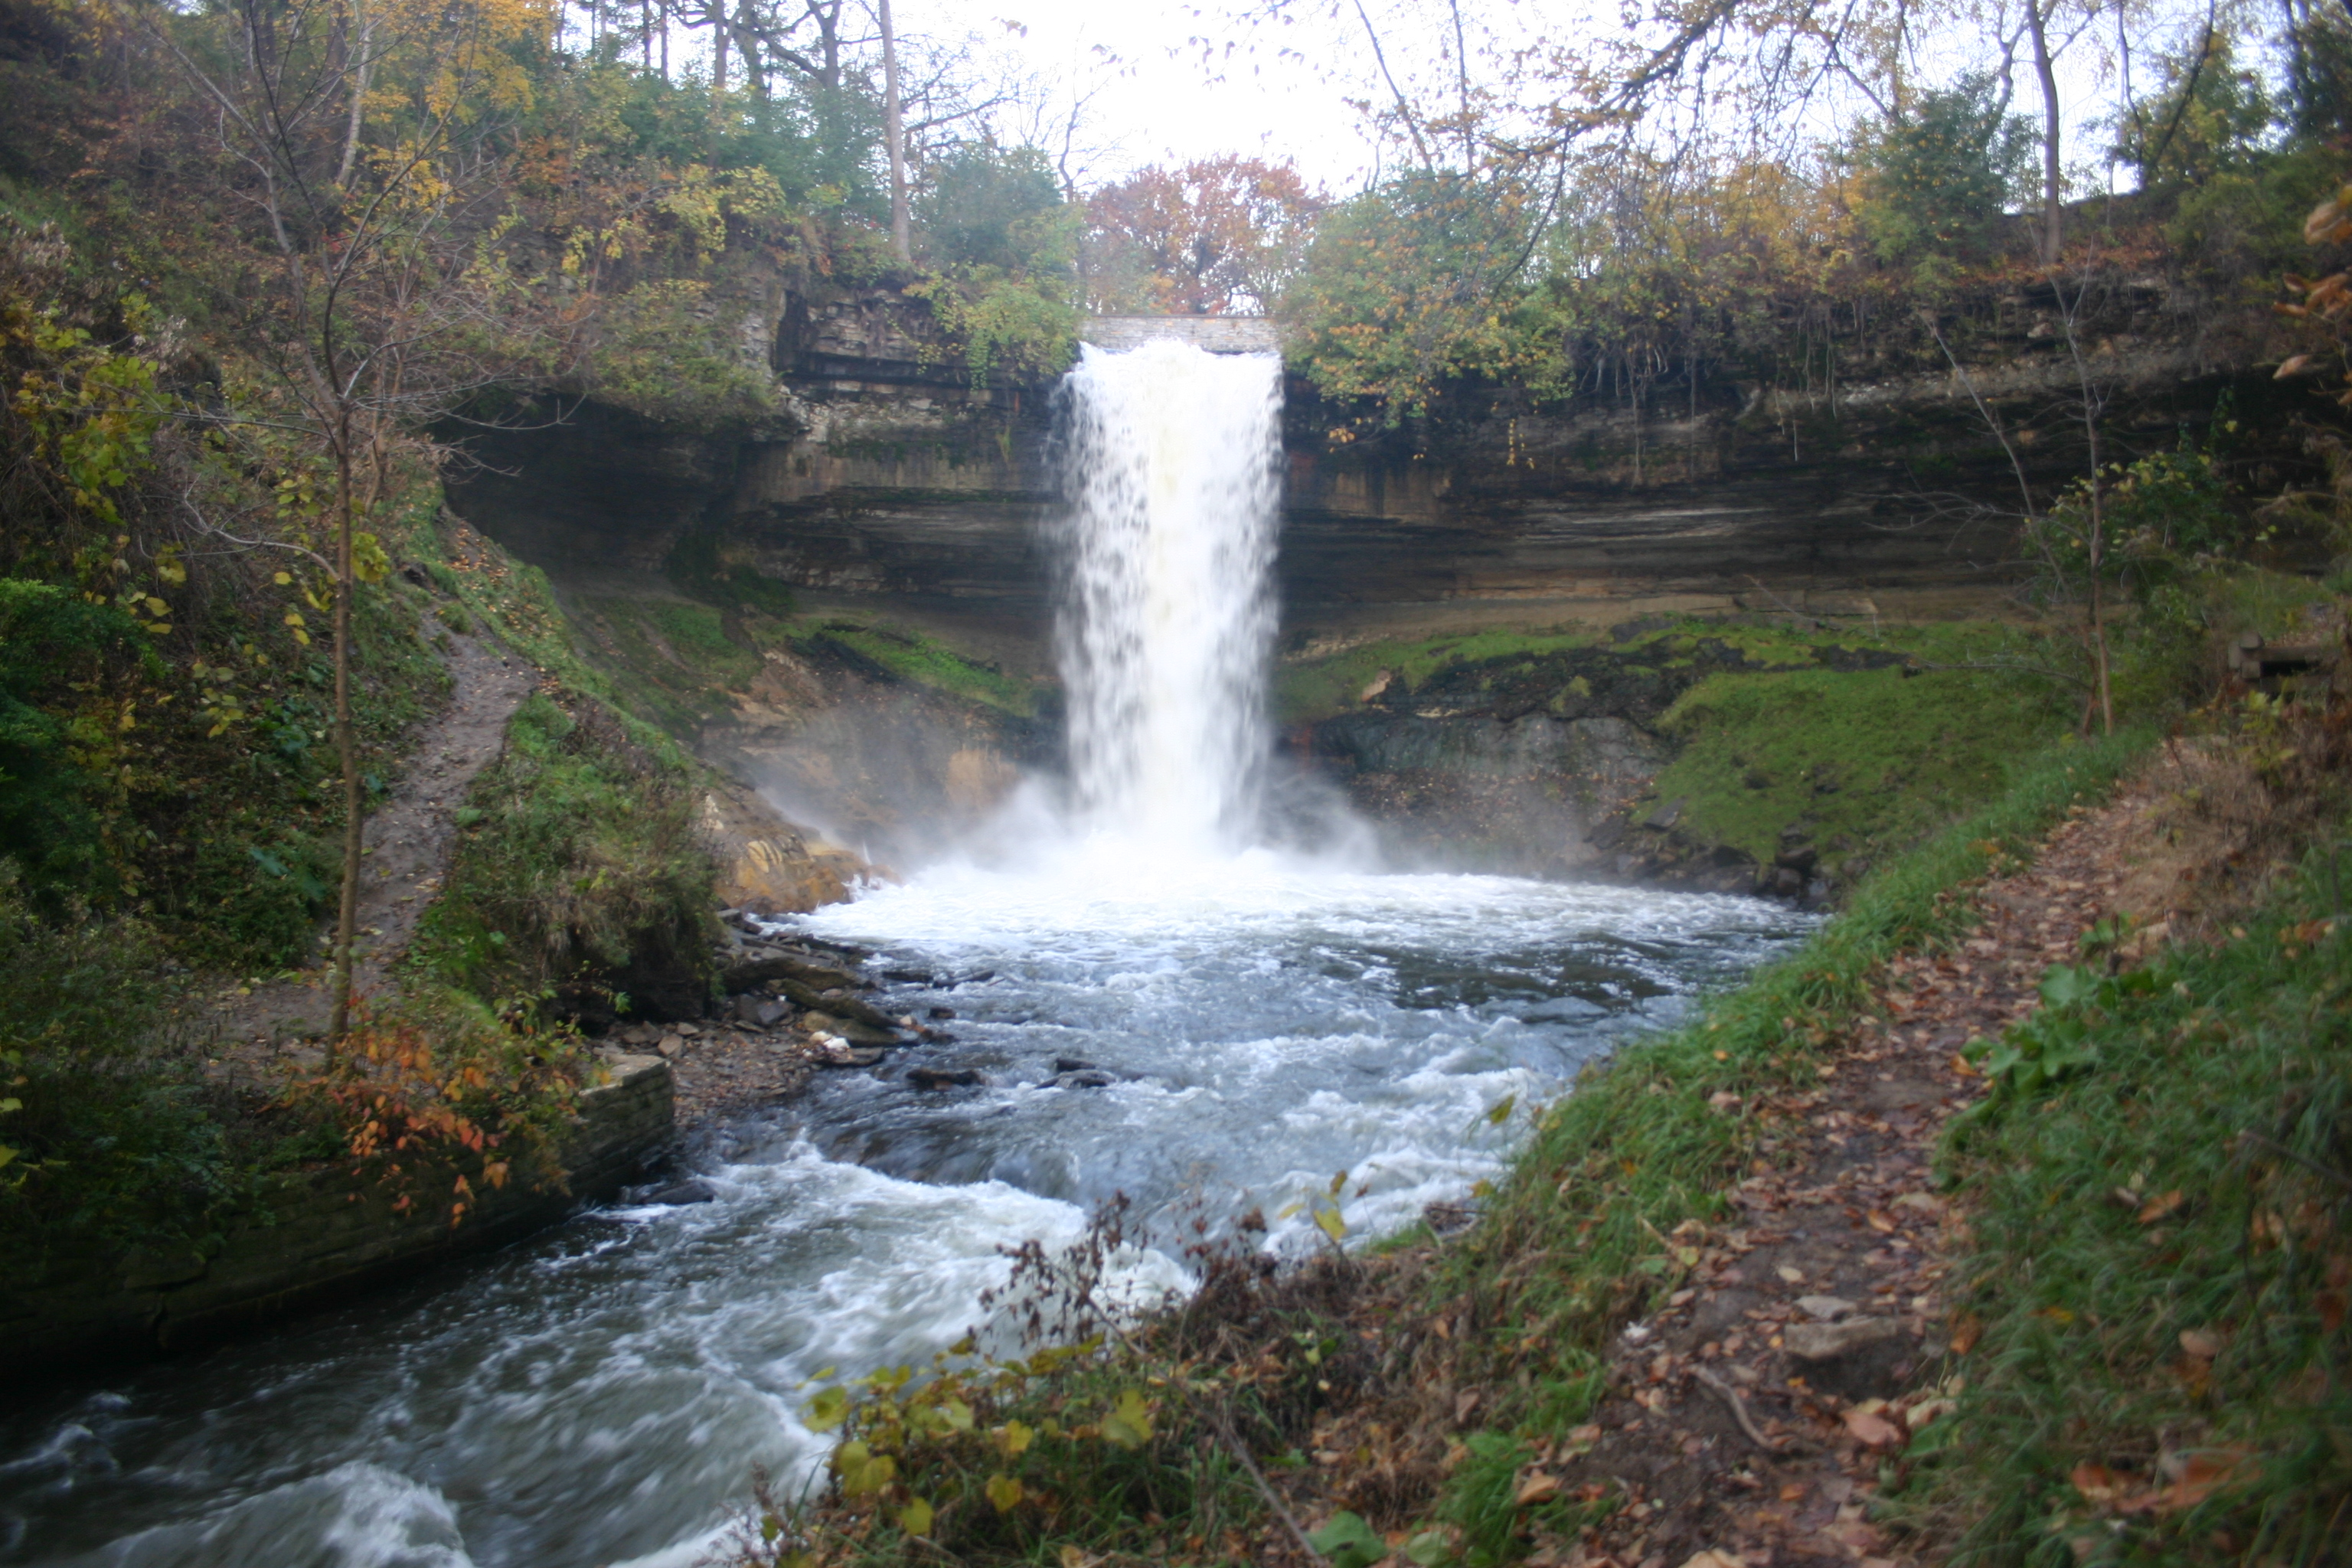 Minnehaha Falls, Minneapolis, Minn. (Wikipedia)